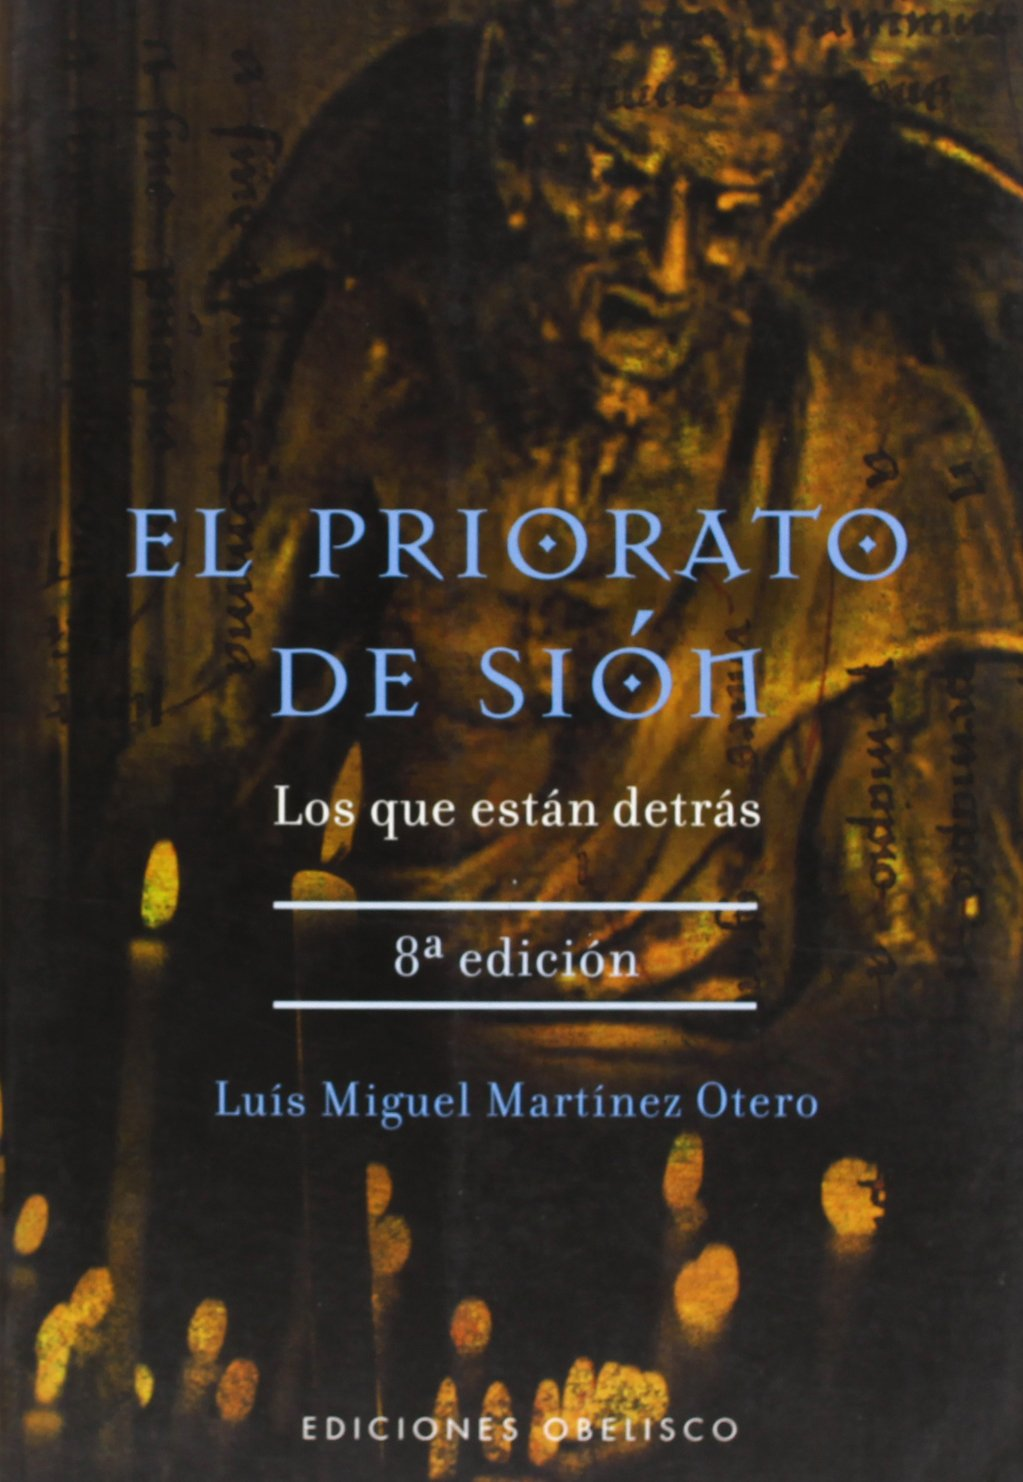 El Priorato De Sion (Spanish Edition)